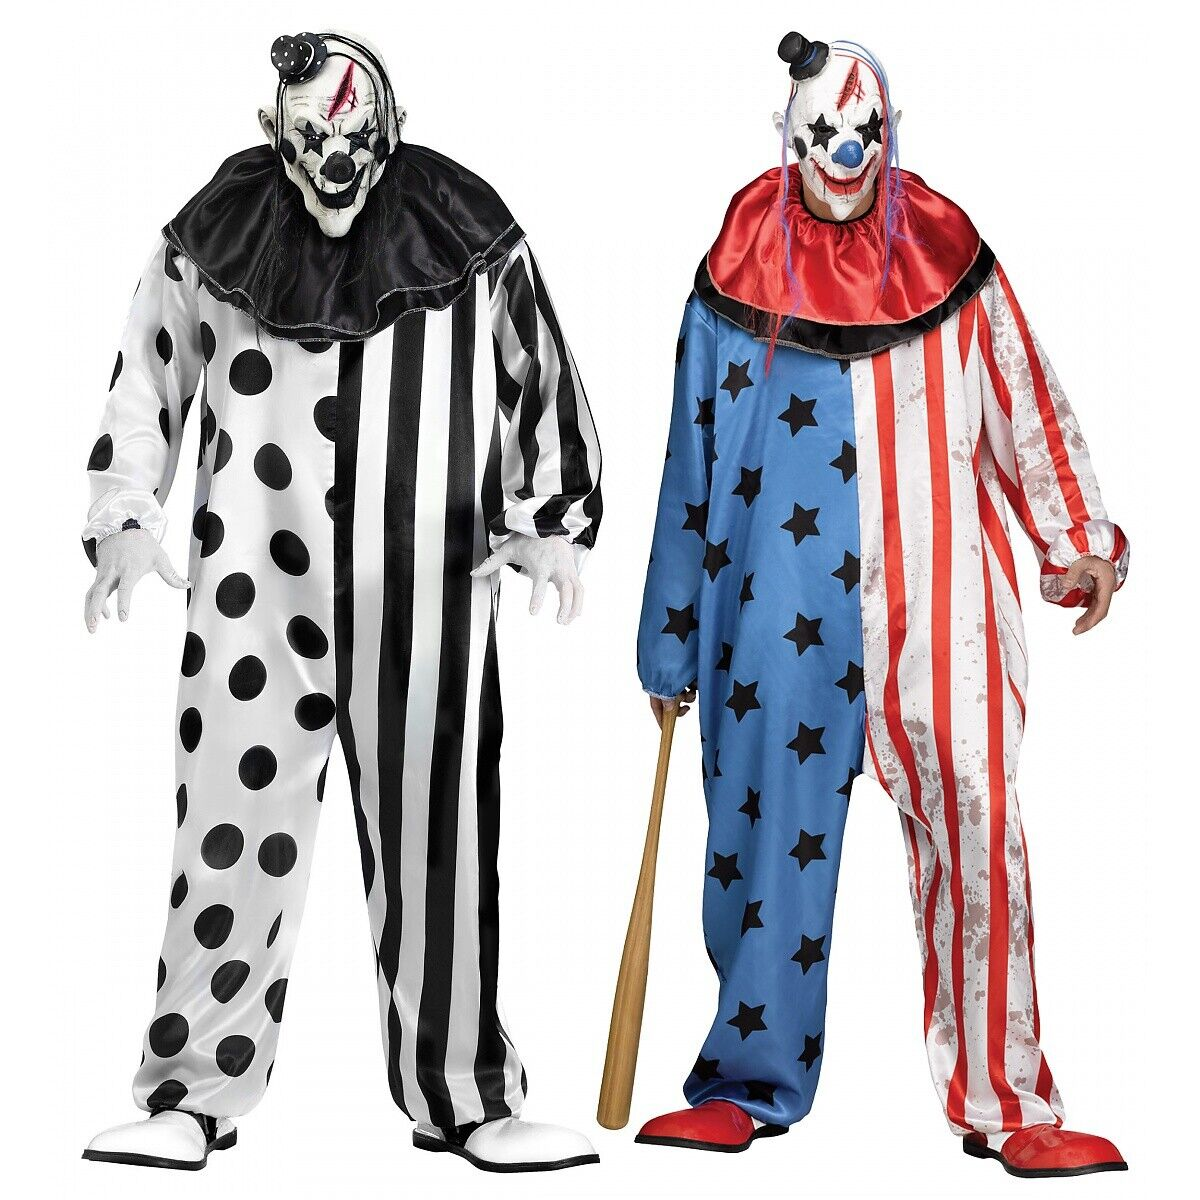 Women Sadistic Clown Costume Evil Killer Circus Halloween Fancy Dress Outfit New